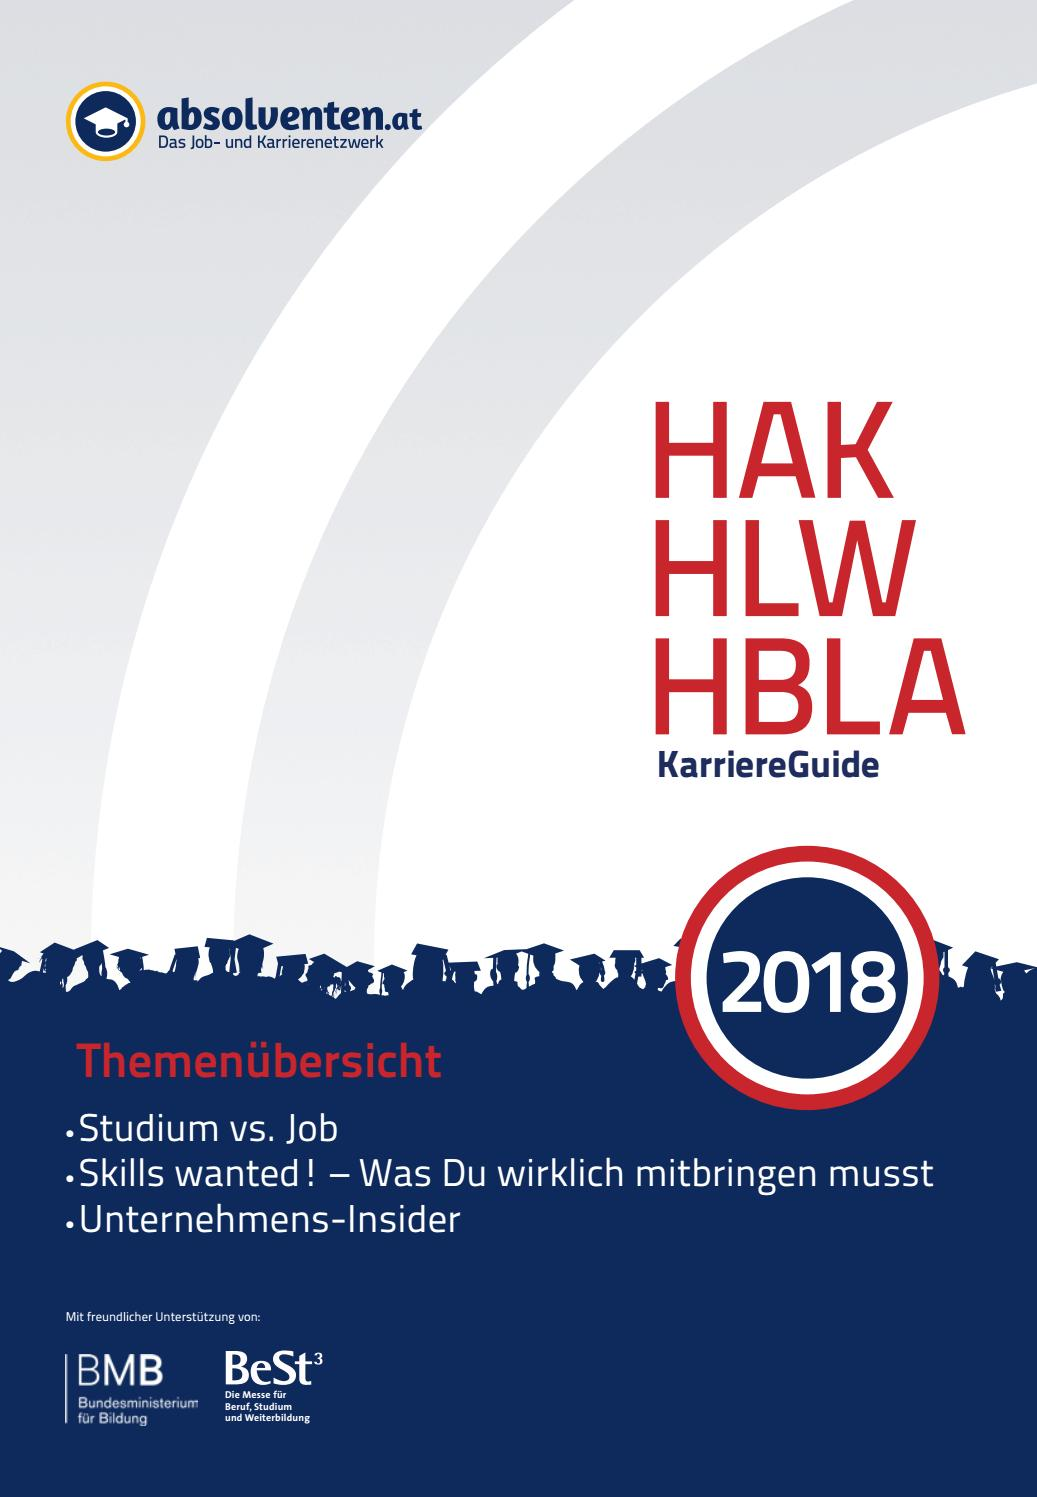 Hak Hlw Hbla Karriereguide 2018 By Absolventen At Issuu